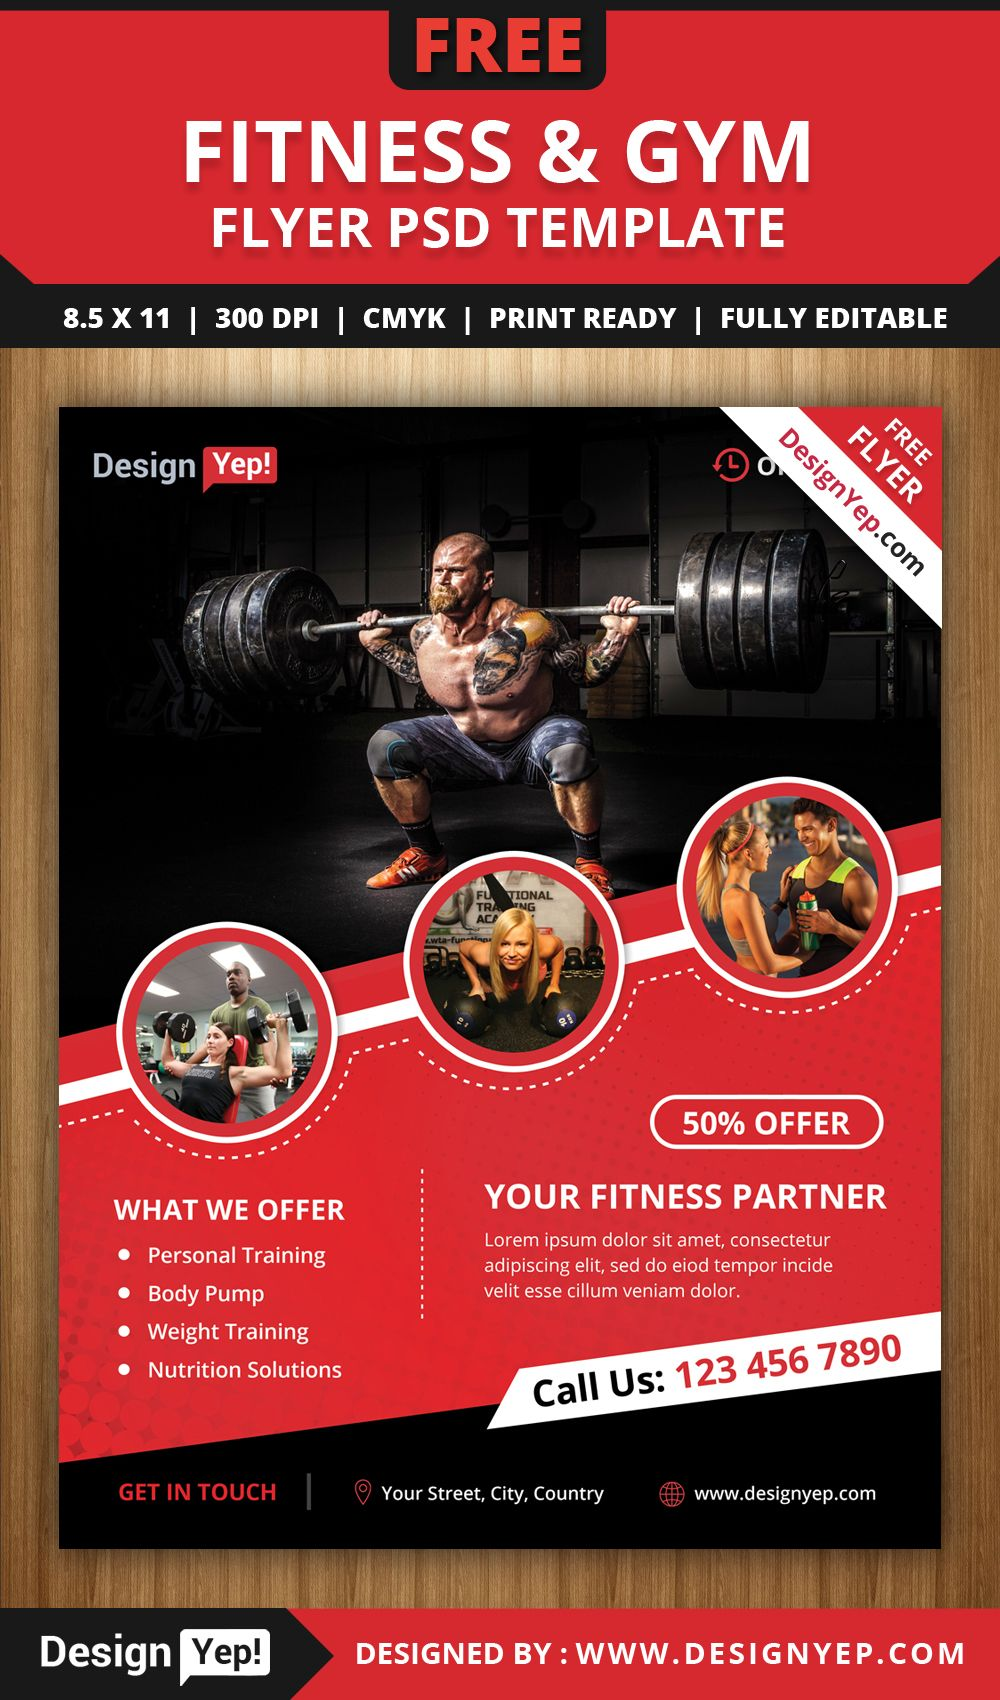 Free fitness gym flyer psd template free flyers for Fitness brochure template